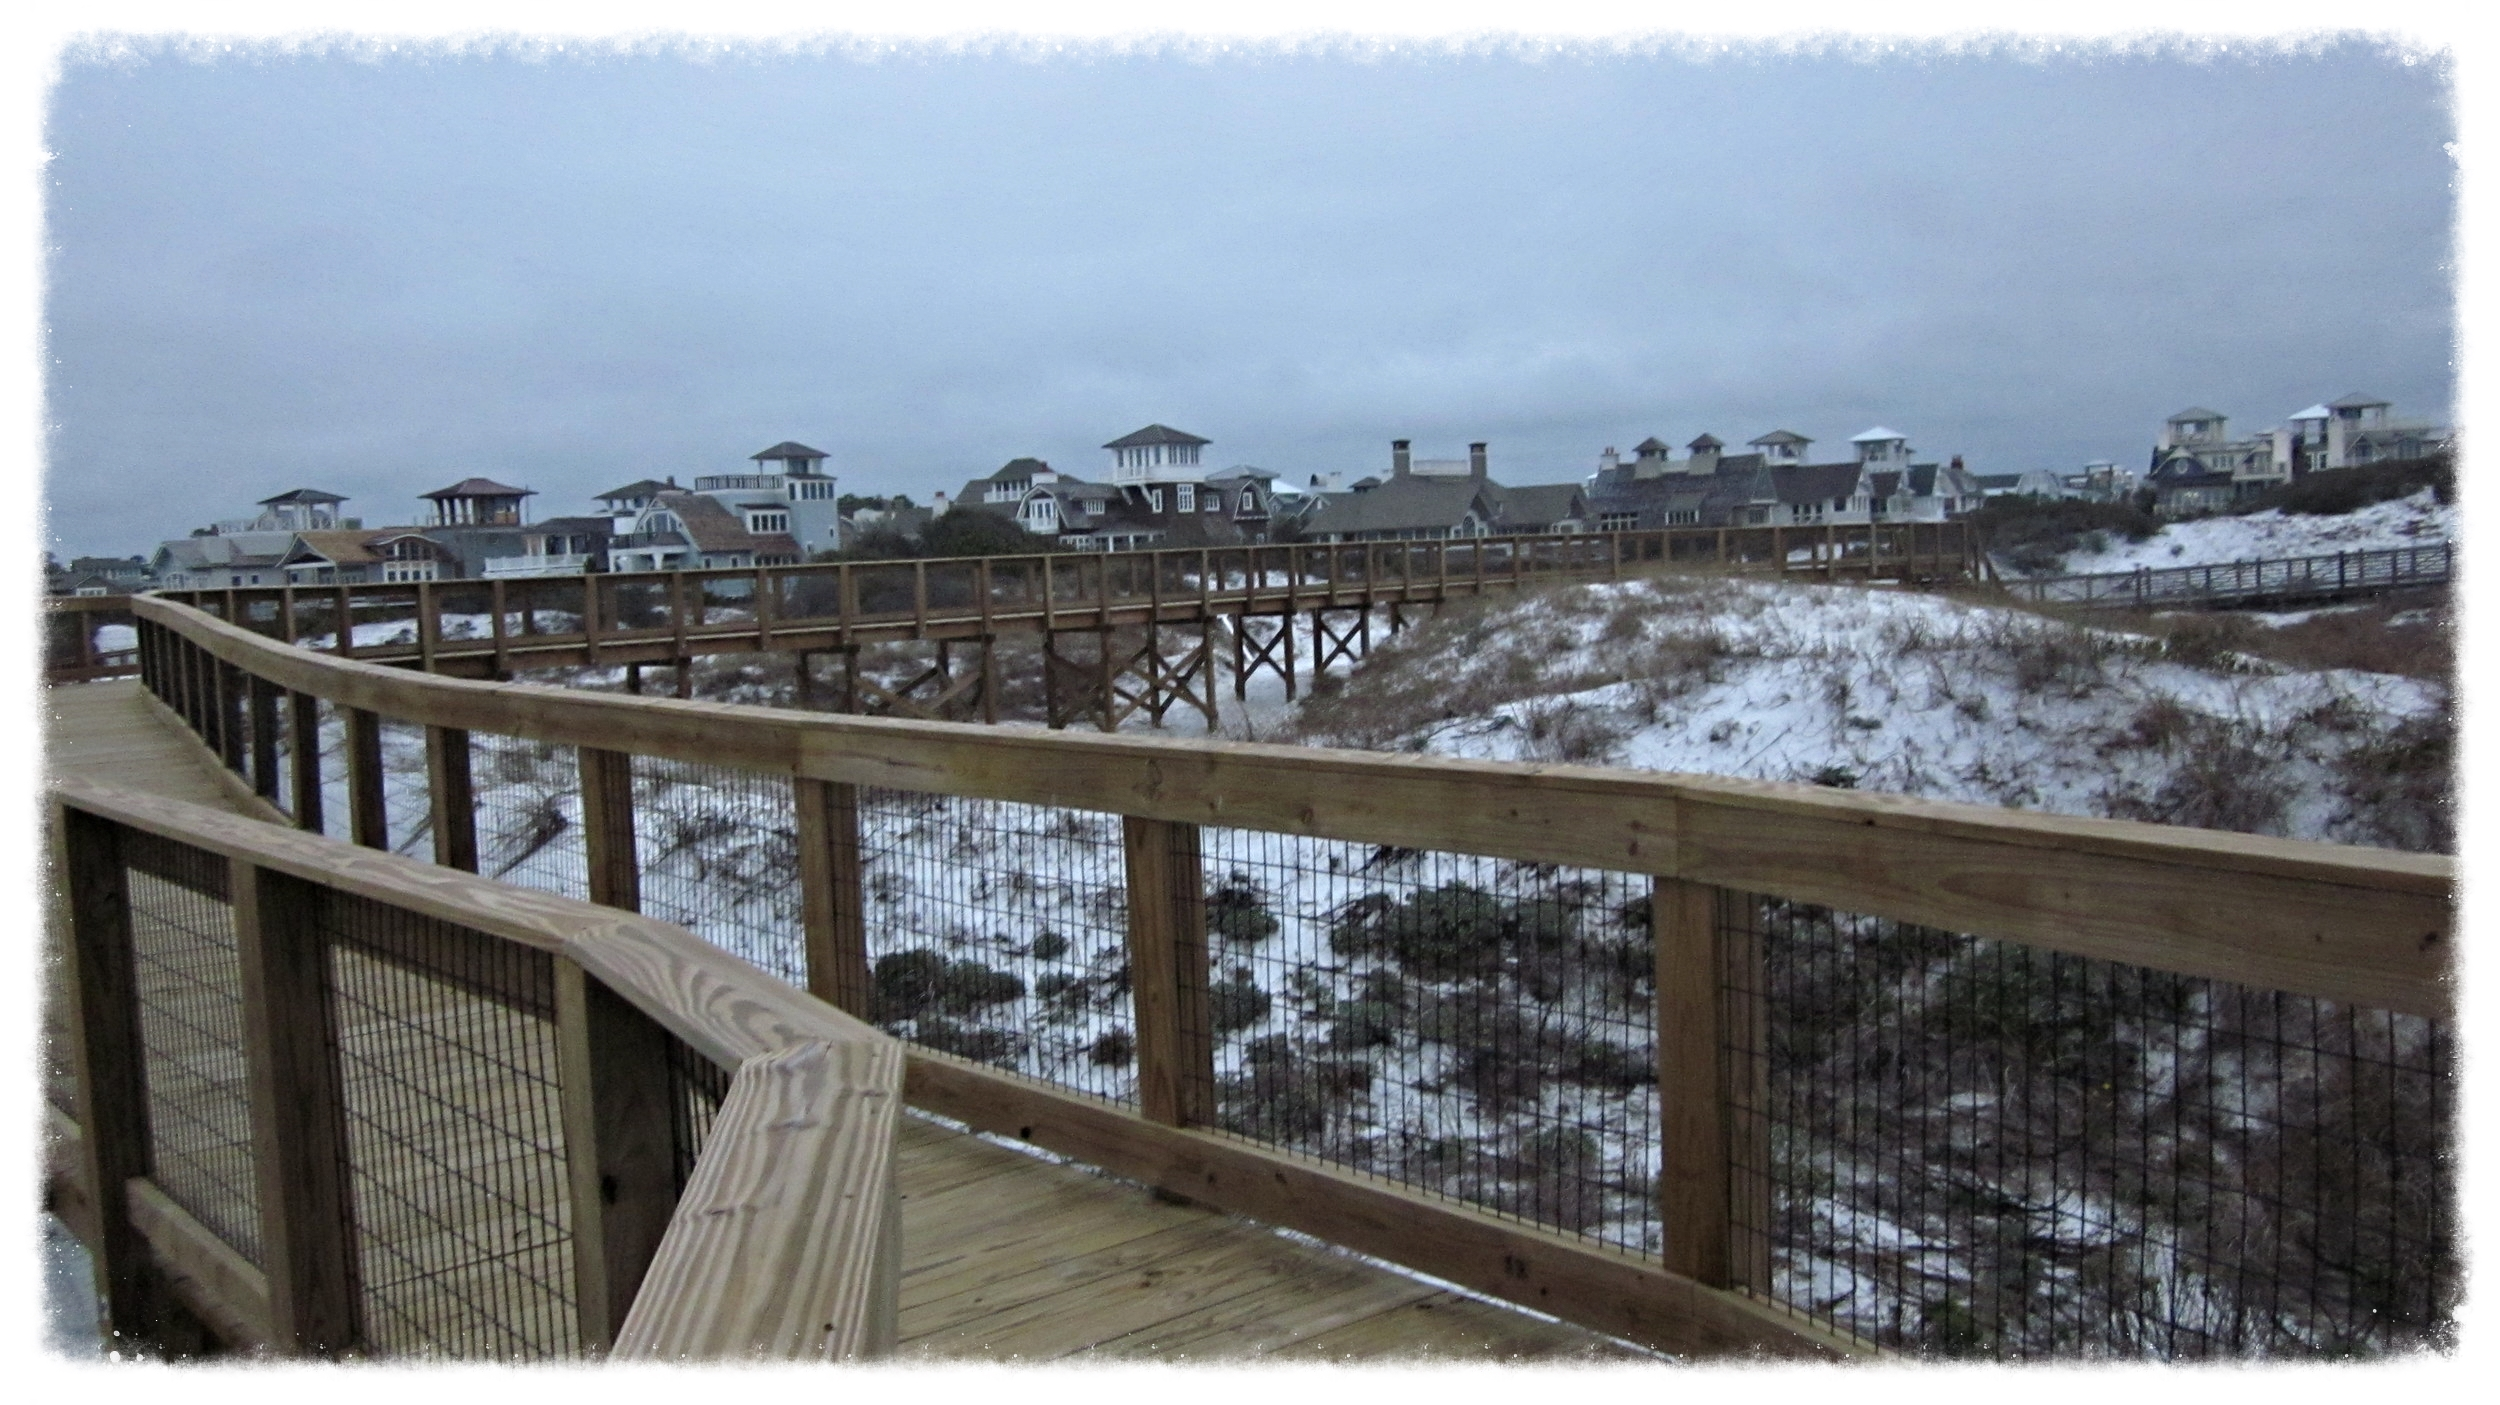 Wooden Boardwalk Construction